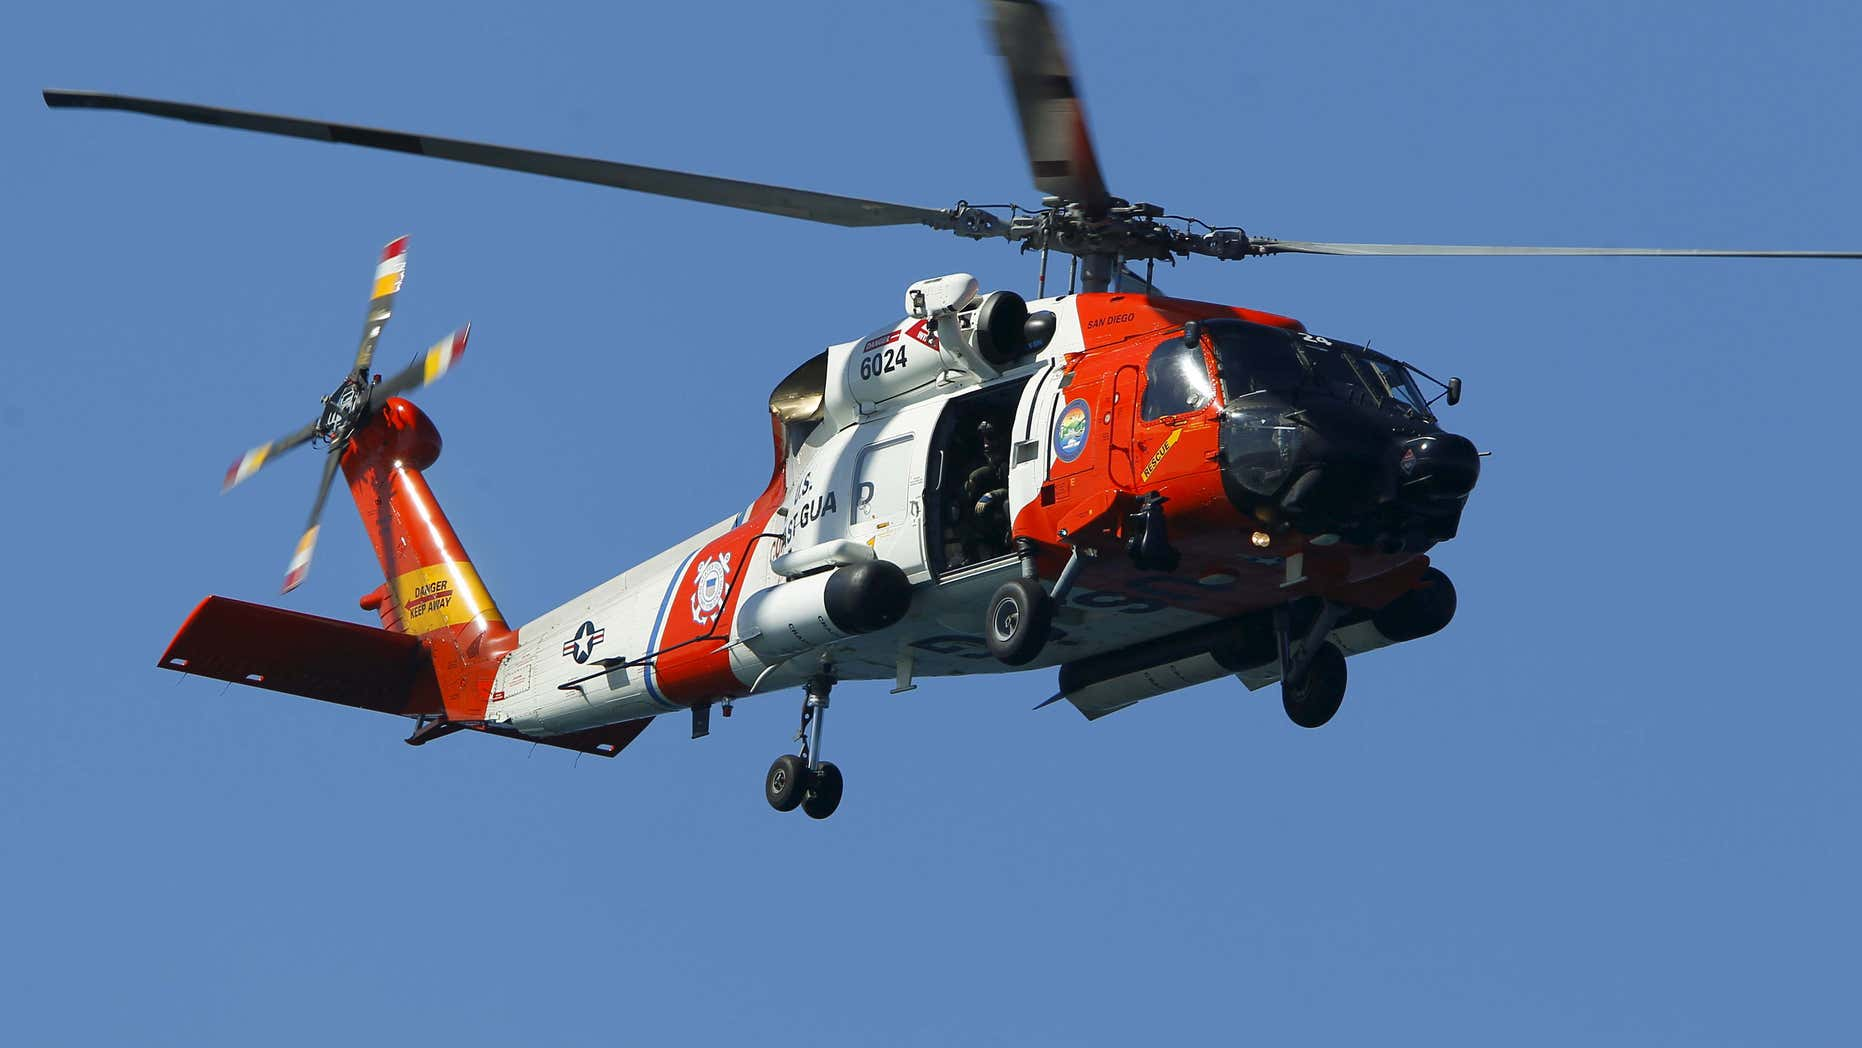 Sept. 30, 2015: A U.S. Coast Guard helicopter hovers over as first responders take part in a mass-rescue exercise centering around a mock airliner crash-landing in the sea near Ocean Beach, Calif.